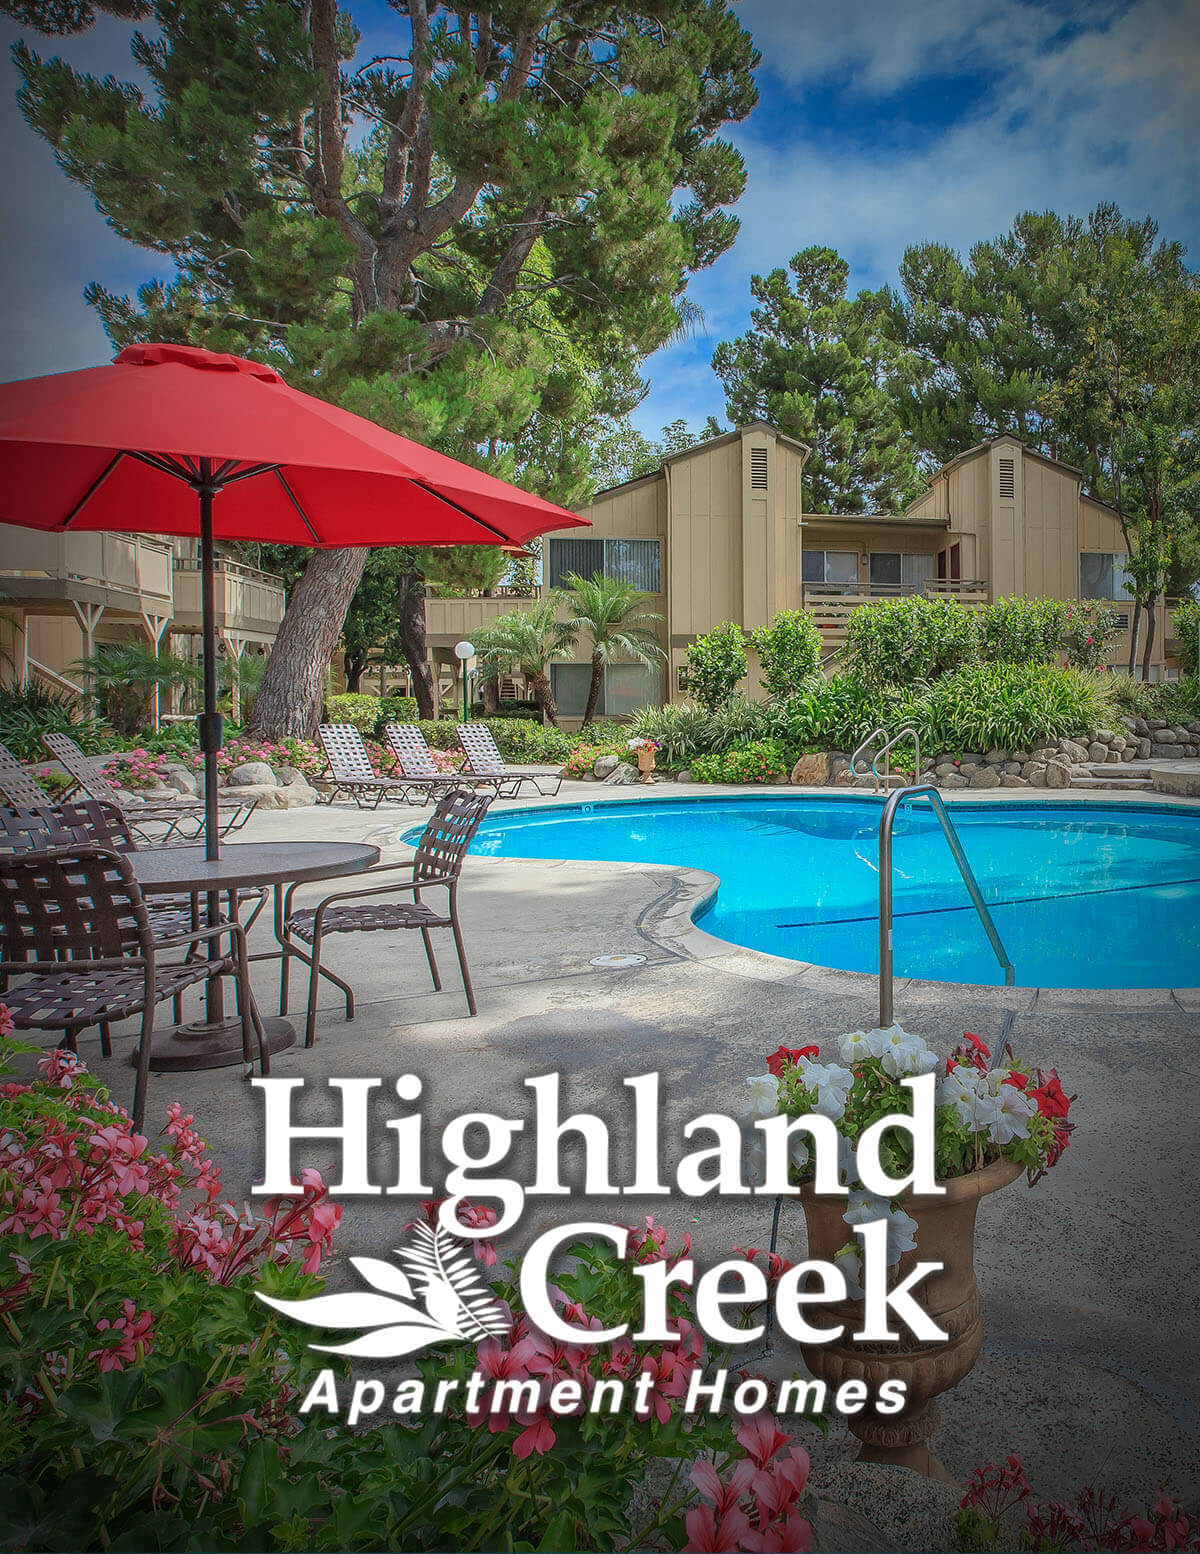 Highland Creek Apartment Homes Property Photo